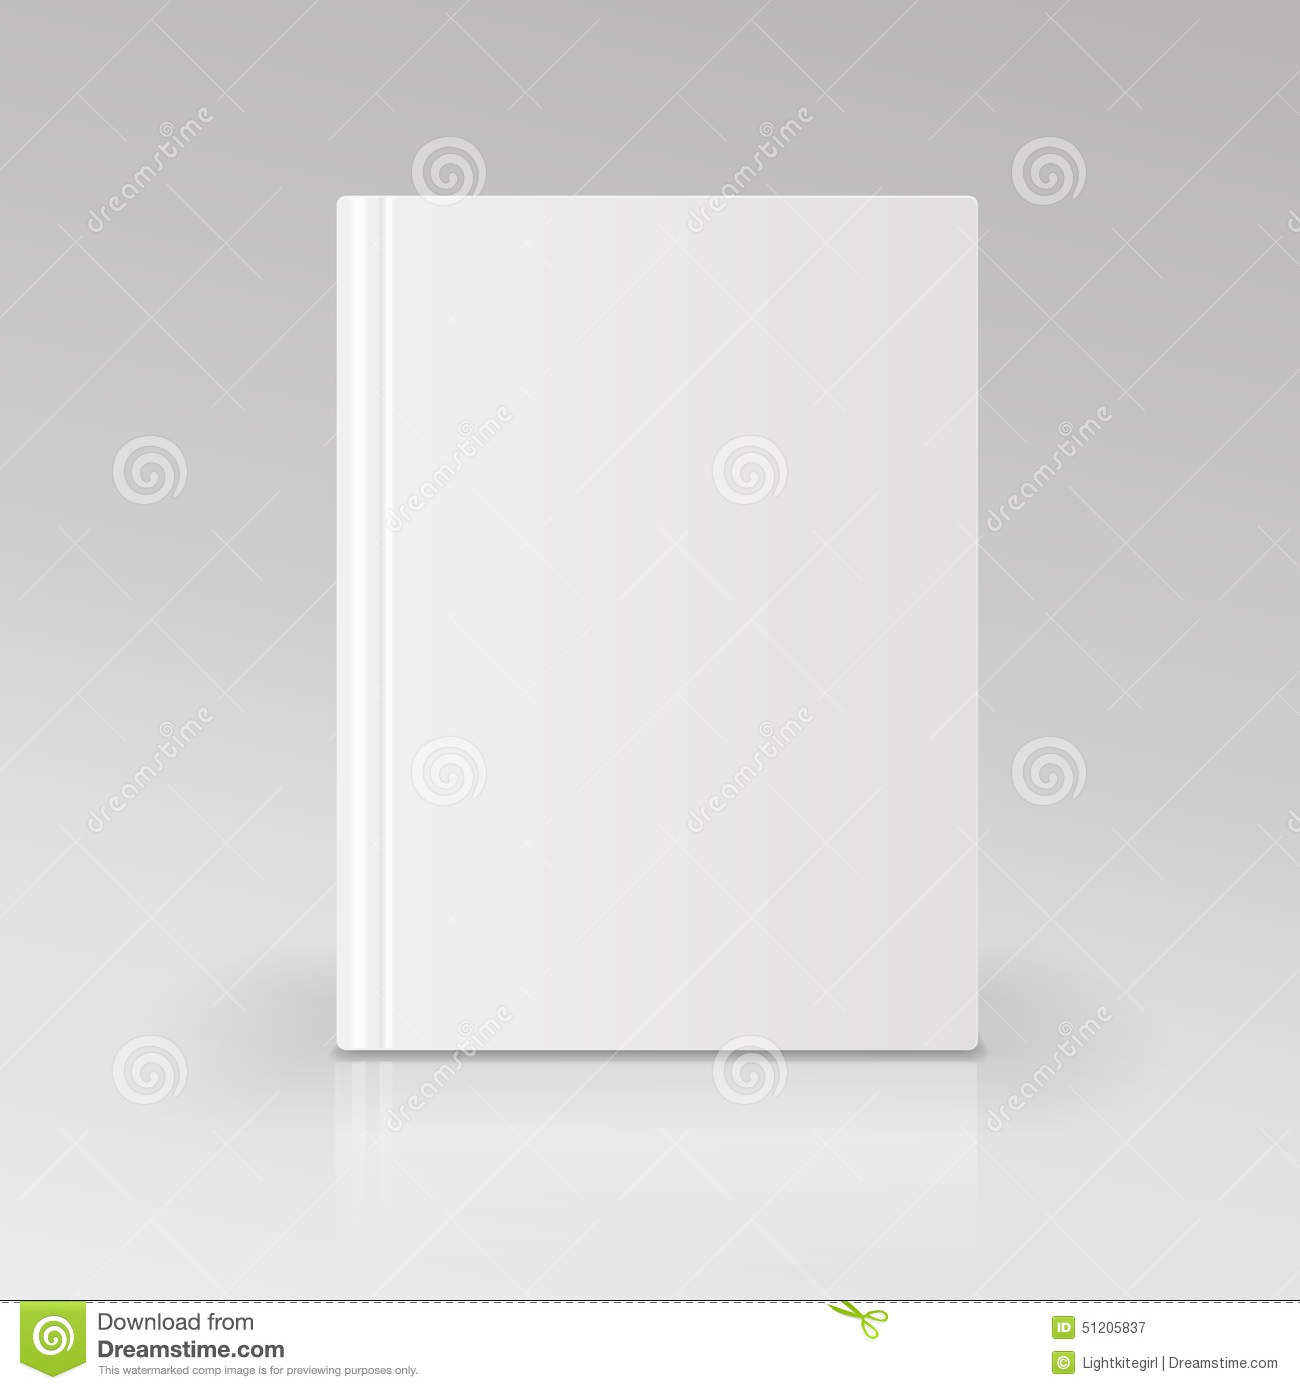 Blank Book Cover Vector Illustration Free : Blank book cover vector illustration isolated stock